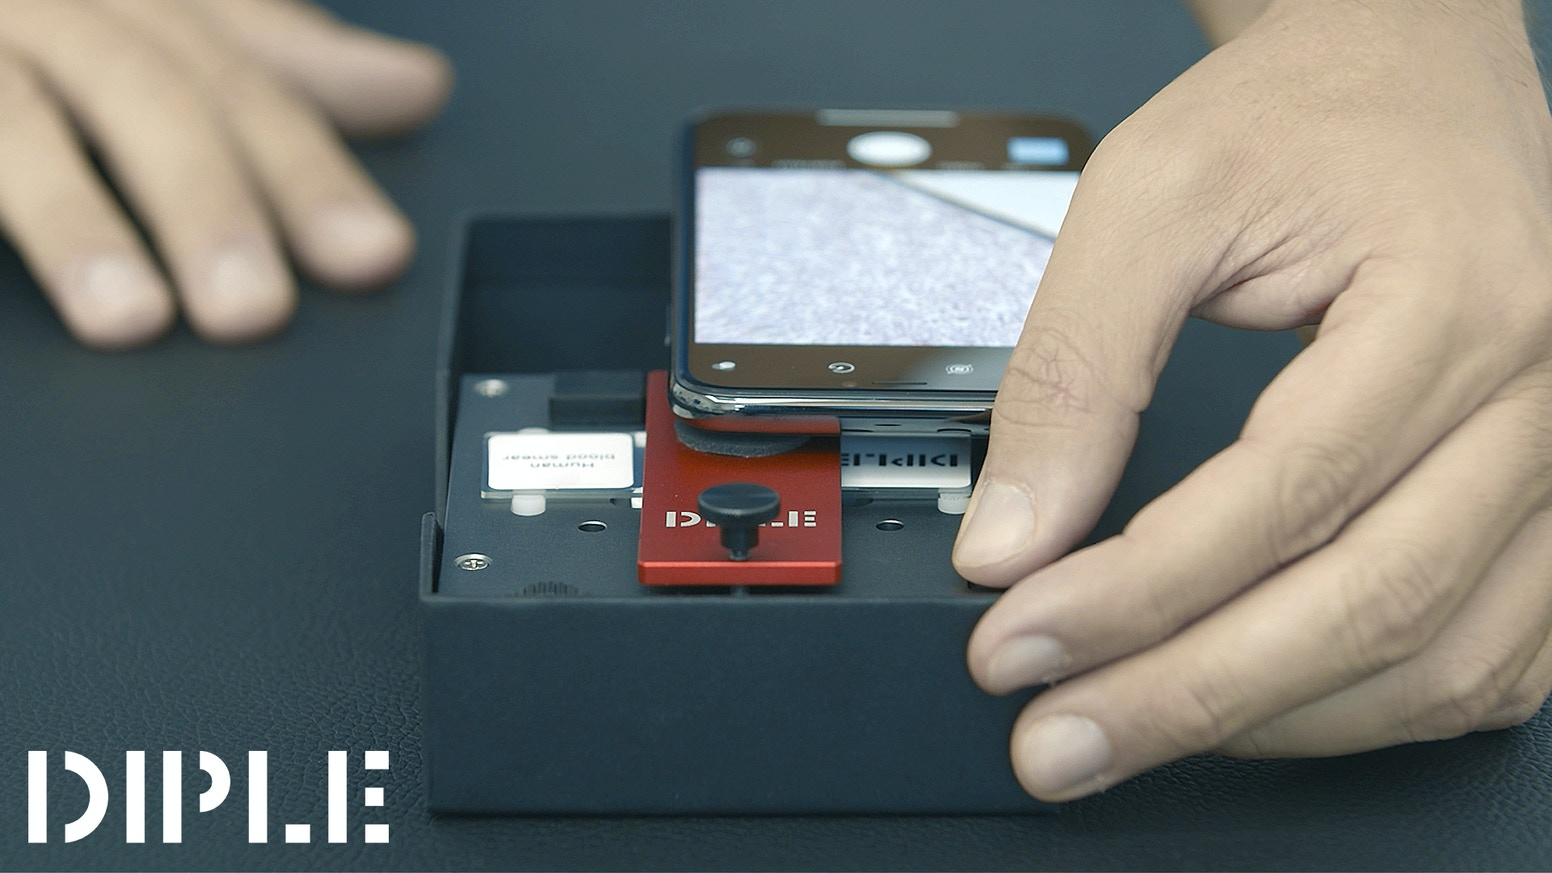 Explore the microscopic world with the most powerful, compact and easy-to use microscope for any smartphone or tablet!